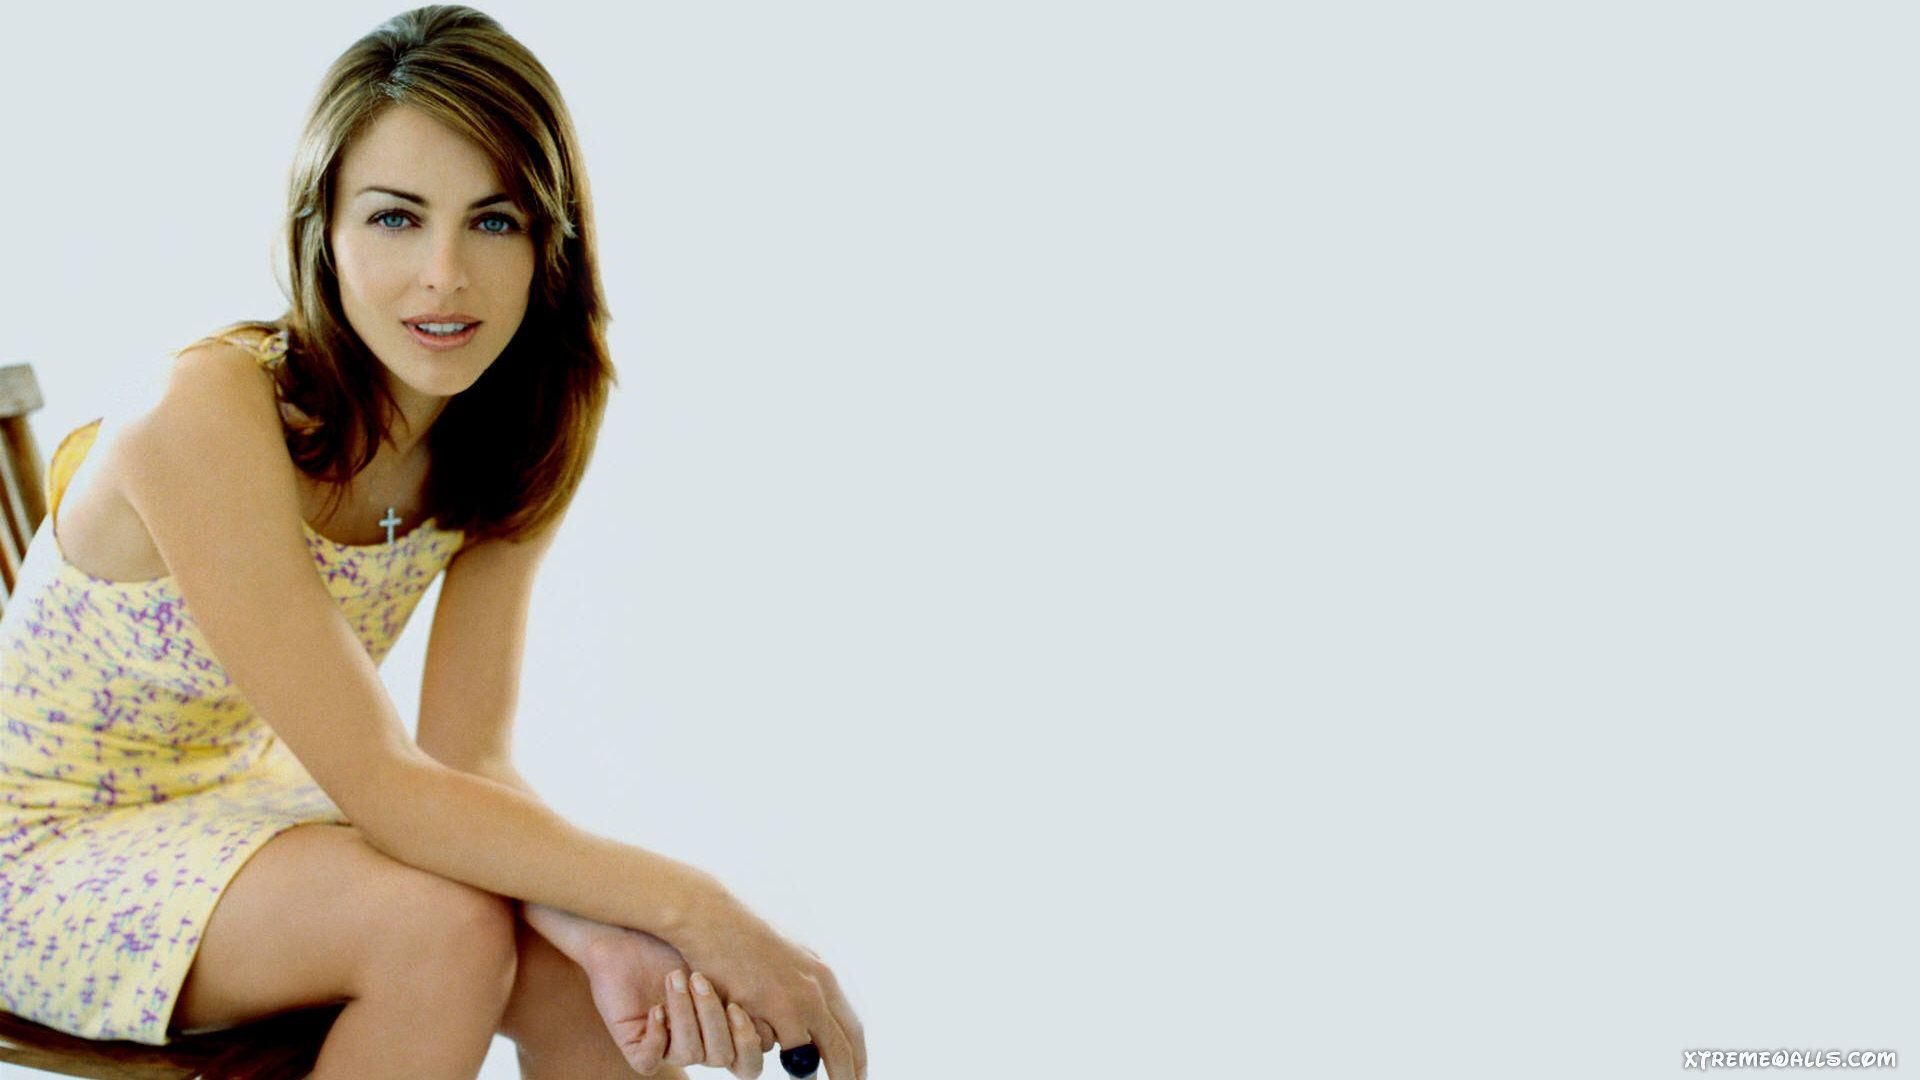 Elizabeth Hurley HD Wallpapers